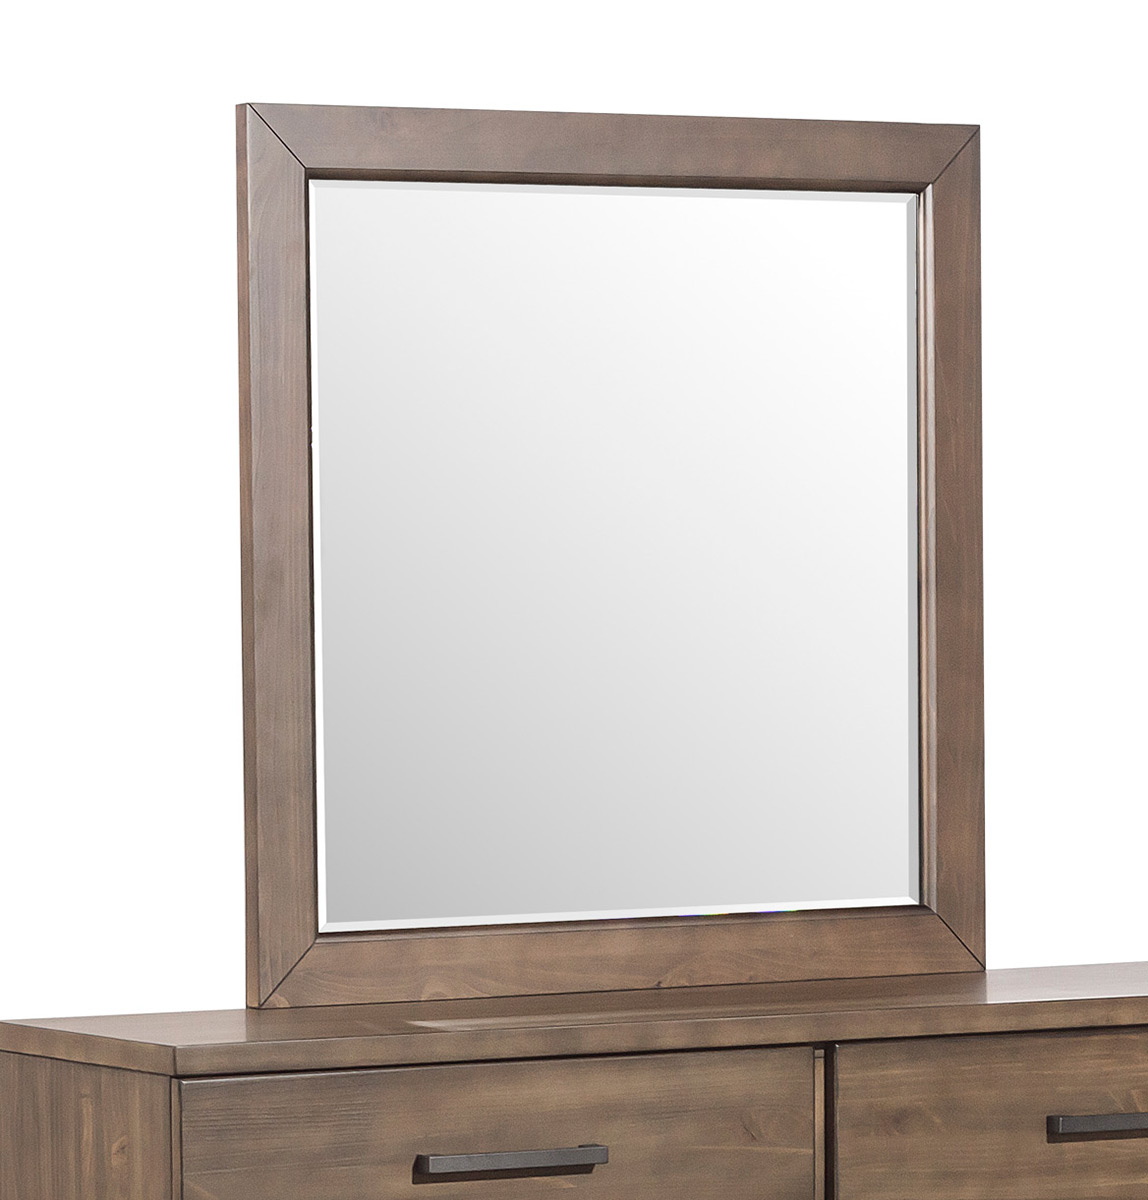 Homelegance Bracco Mirror - Brown